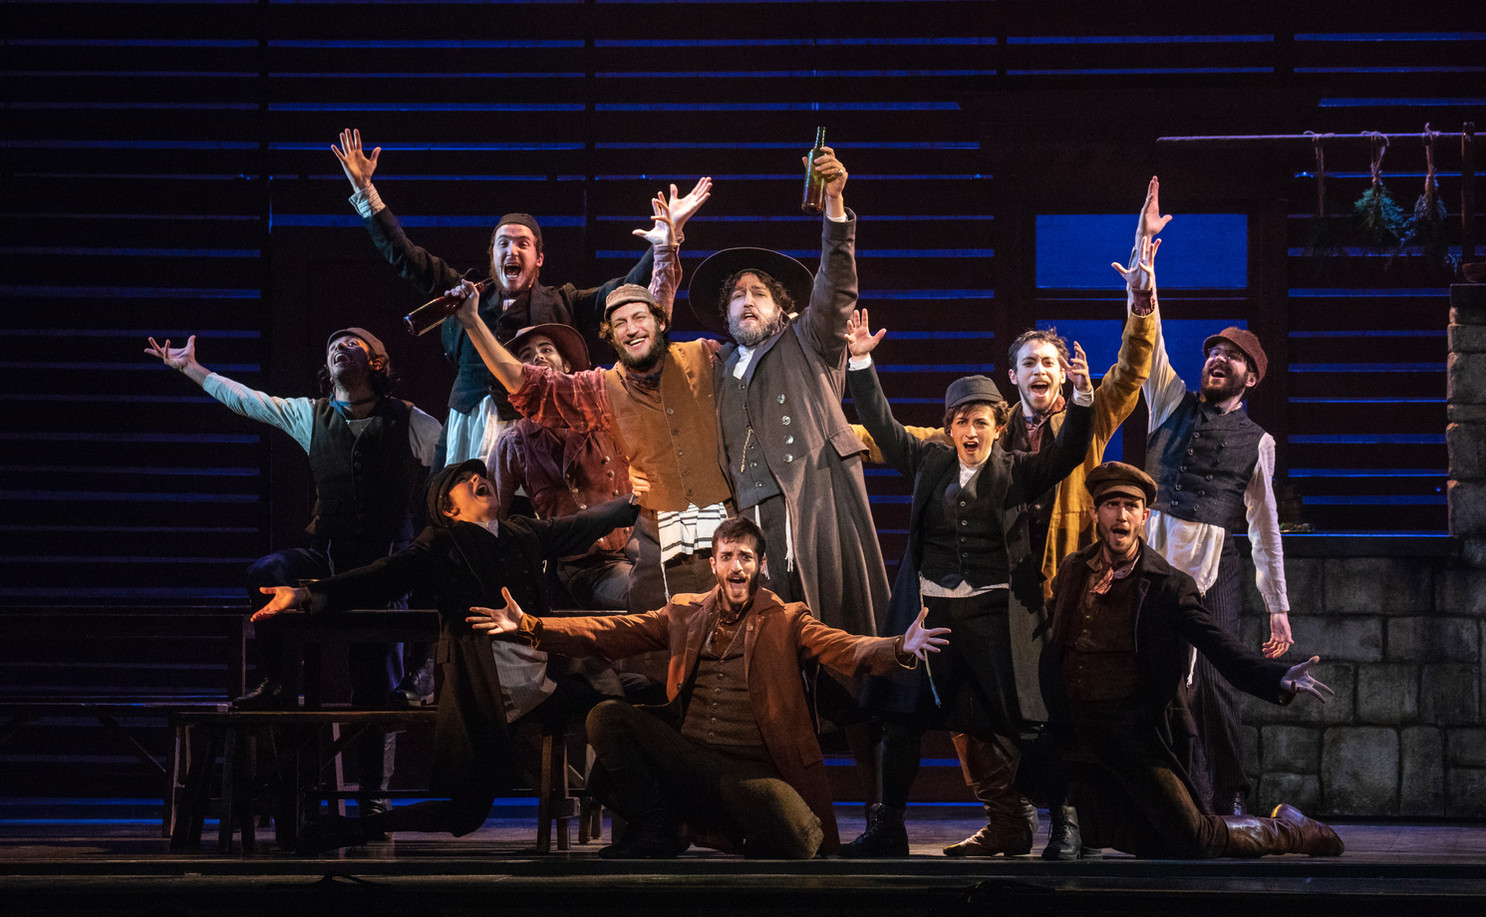 Yehezkel Lazarov, Jonathan Von Mering & the Cast of Fiddler on the Roof.